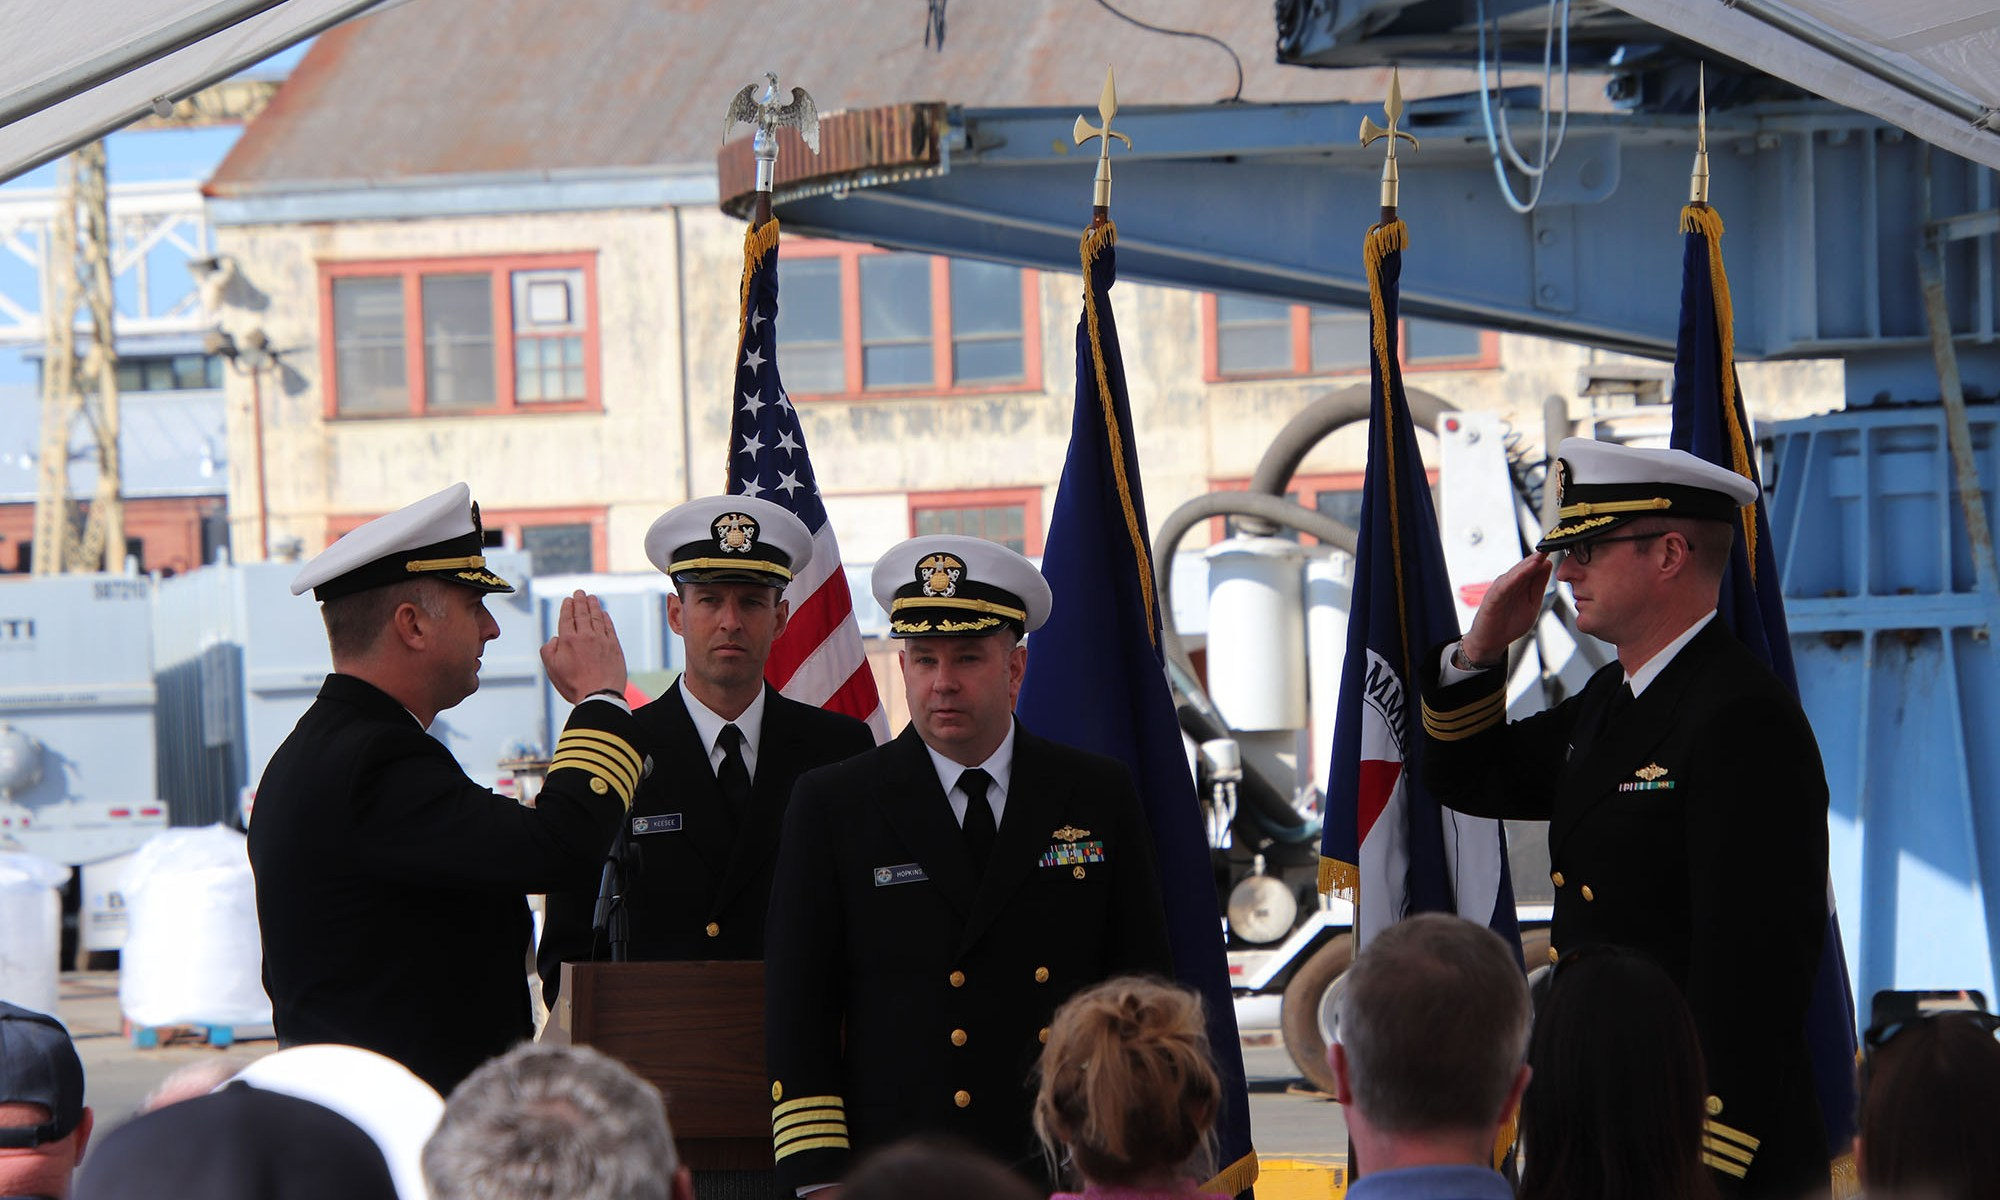 Lt. Cmdr. Justin Keesee, NOAA Ship Rainier executive officer and Capt. Michael Hopkins lead the change of command in Valejo, California.